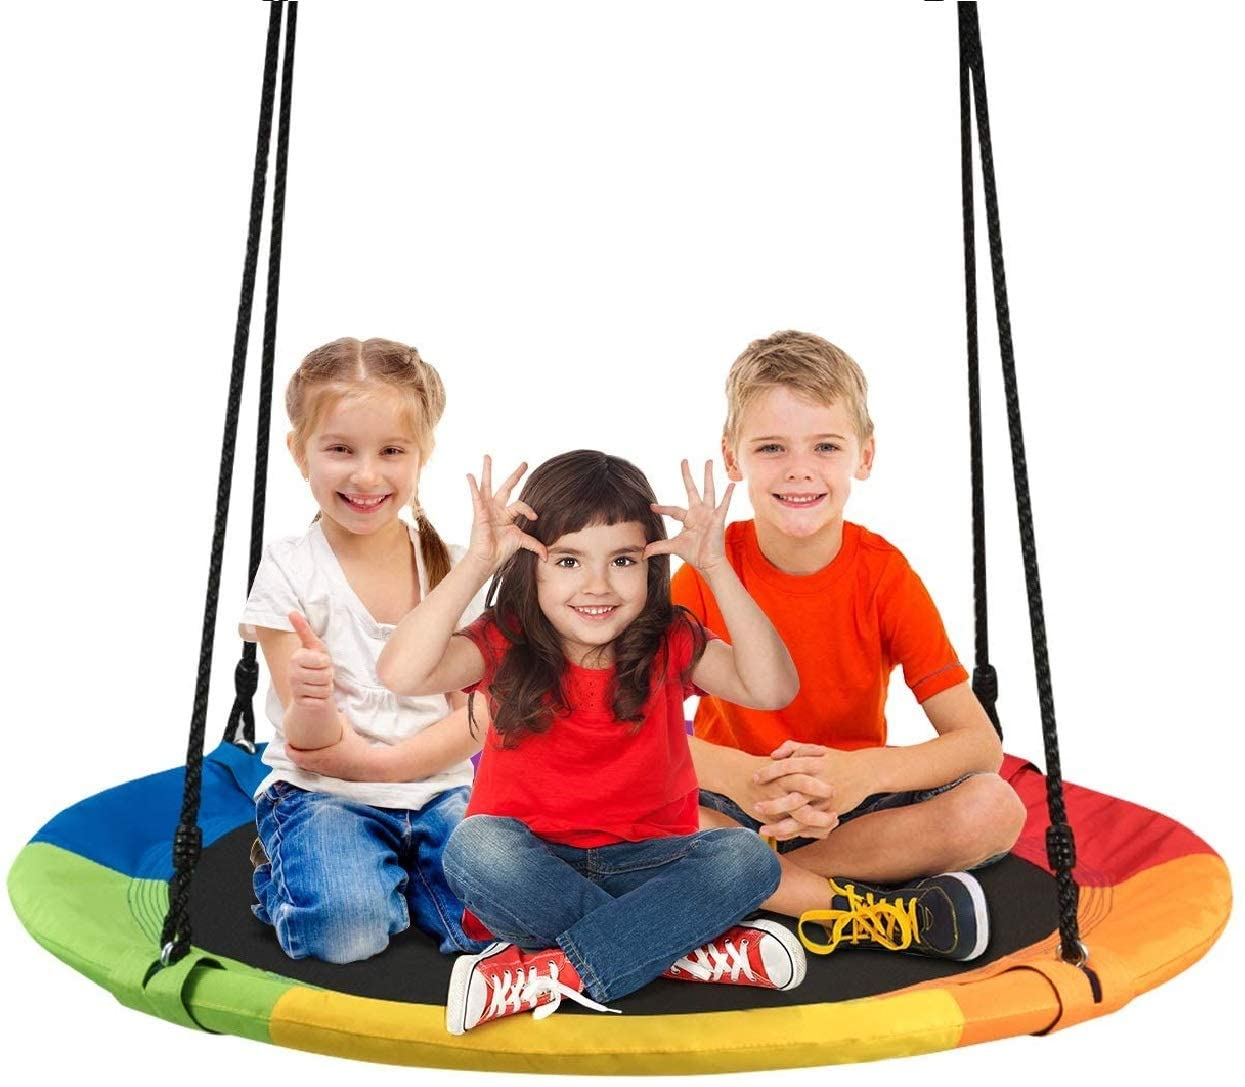 Swing a Ring Toy for Outside with Kids